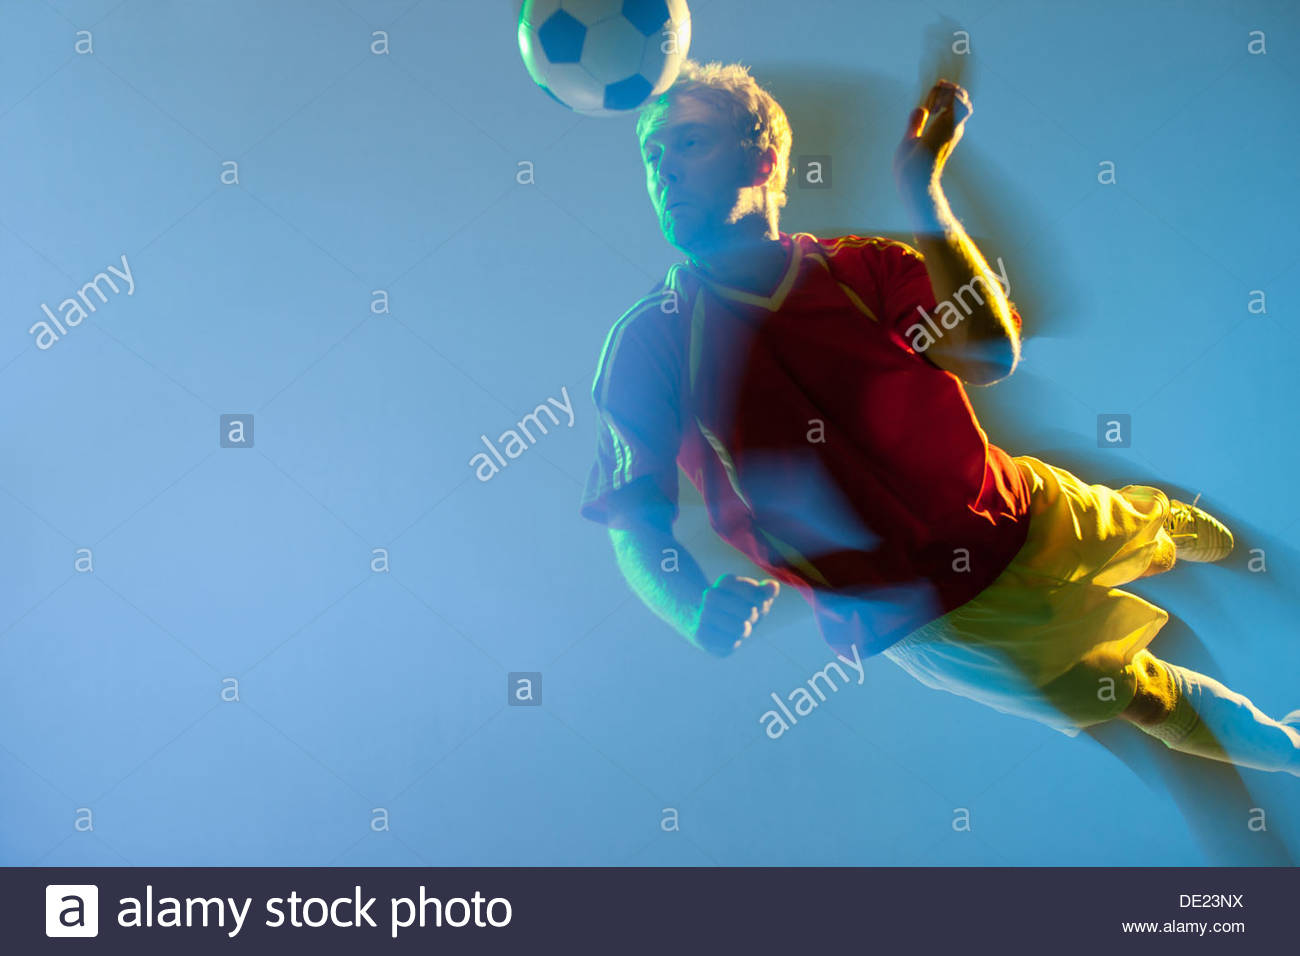 Blurred view of soccer player heading ball - Stock Image